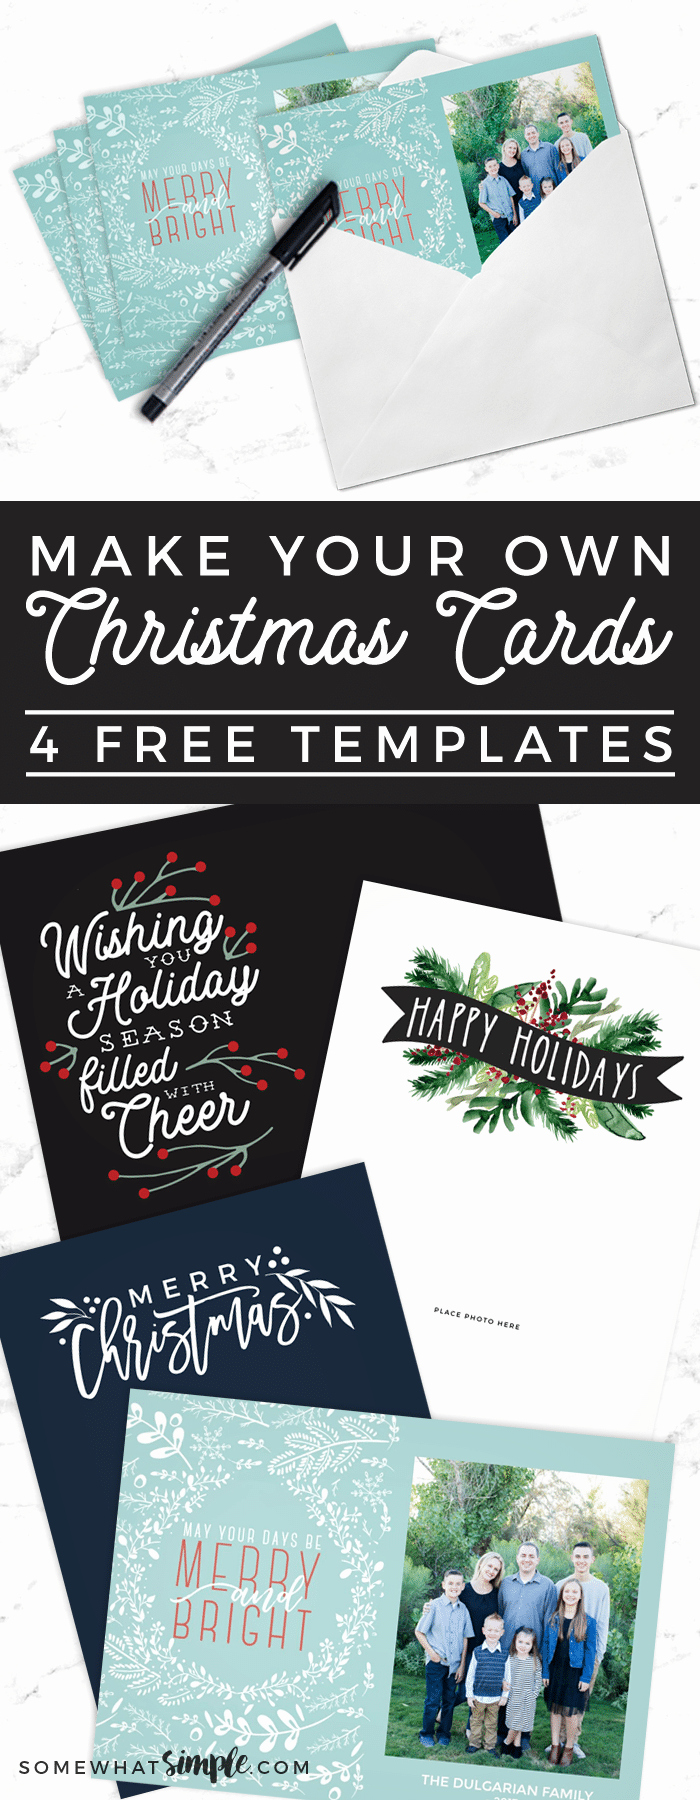 Free Printable Postcard Templates Unique Make Your Own Christmas Cards for Free somewhat